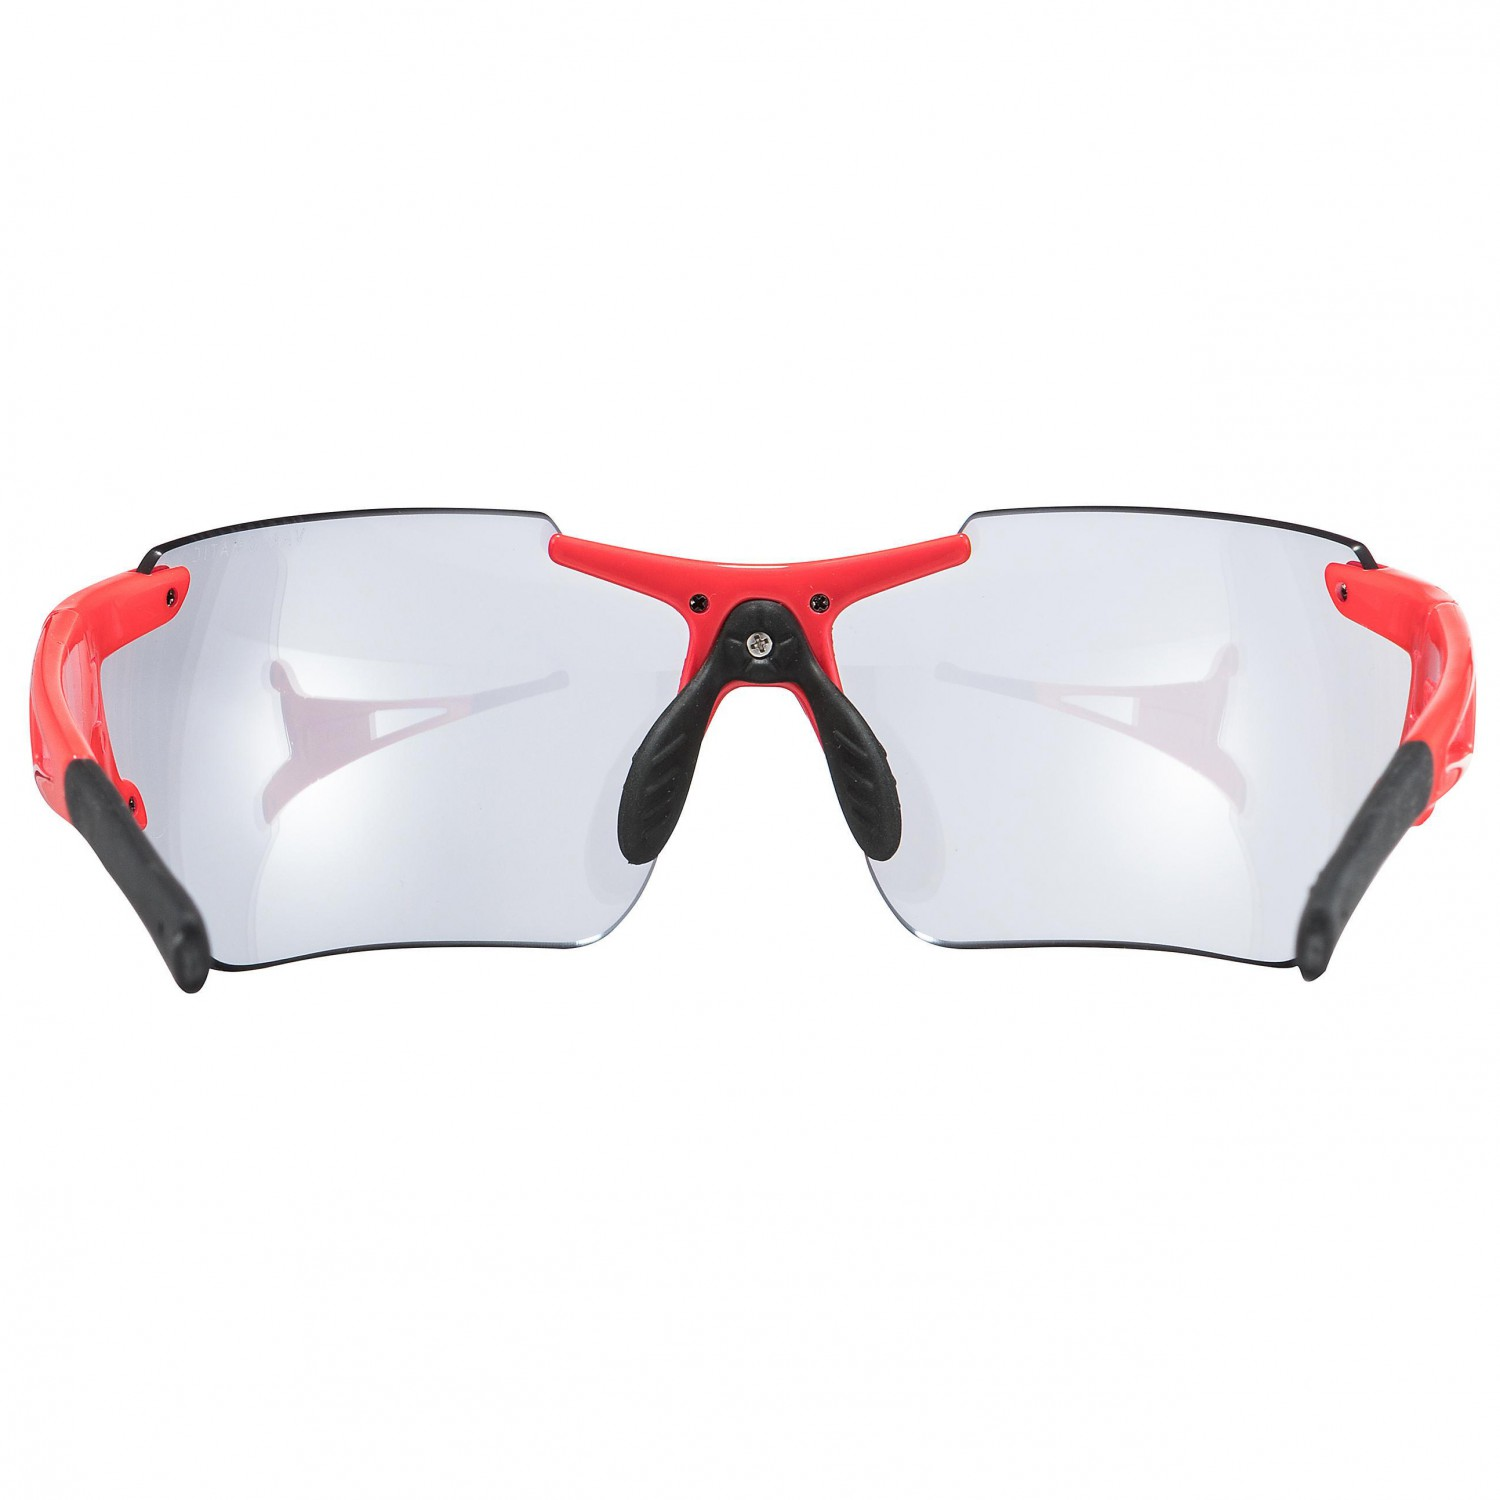 ... Uvex - Sportstyle 803 Race Small Variomatic Litemirror S1 - Cycling  glasses ... a8c02aeef01